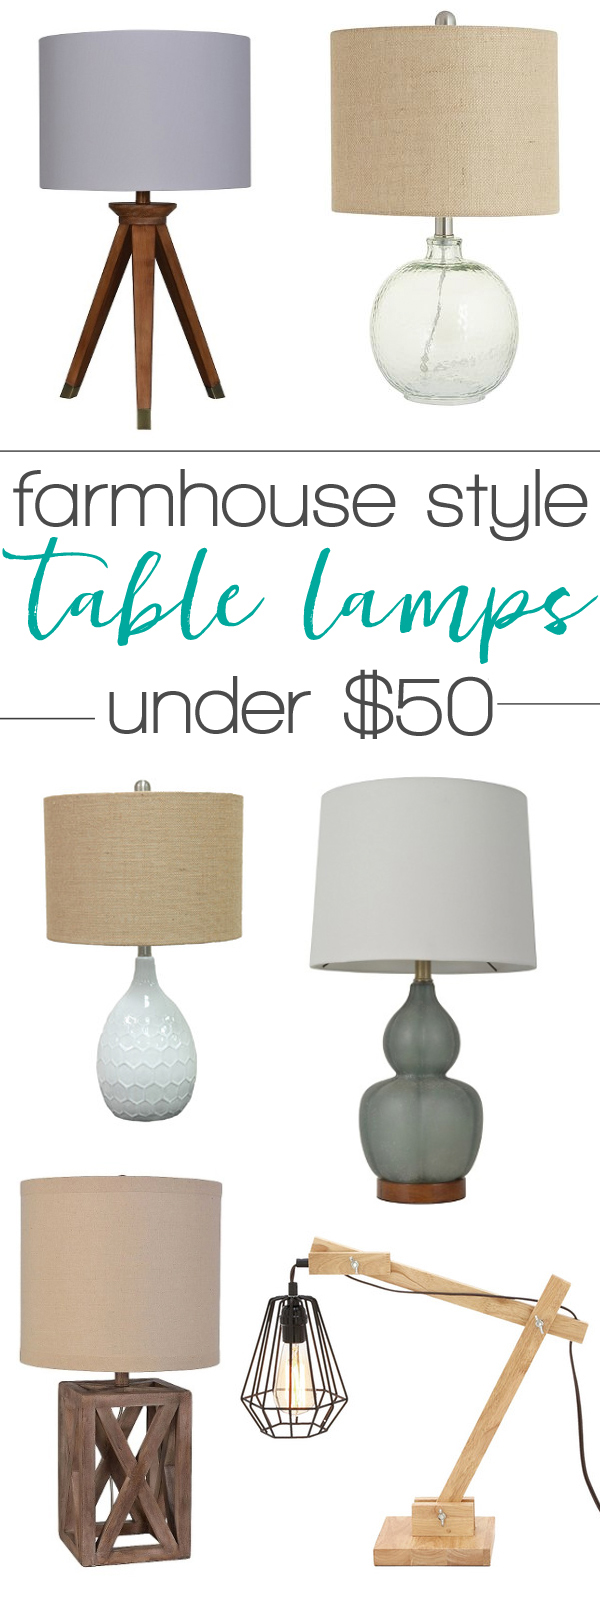 Beautiful farmhouse style table lamps - all under $50